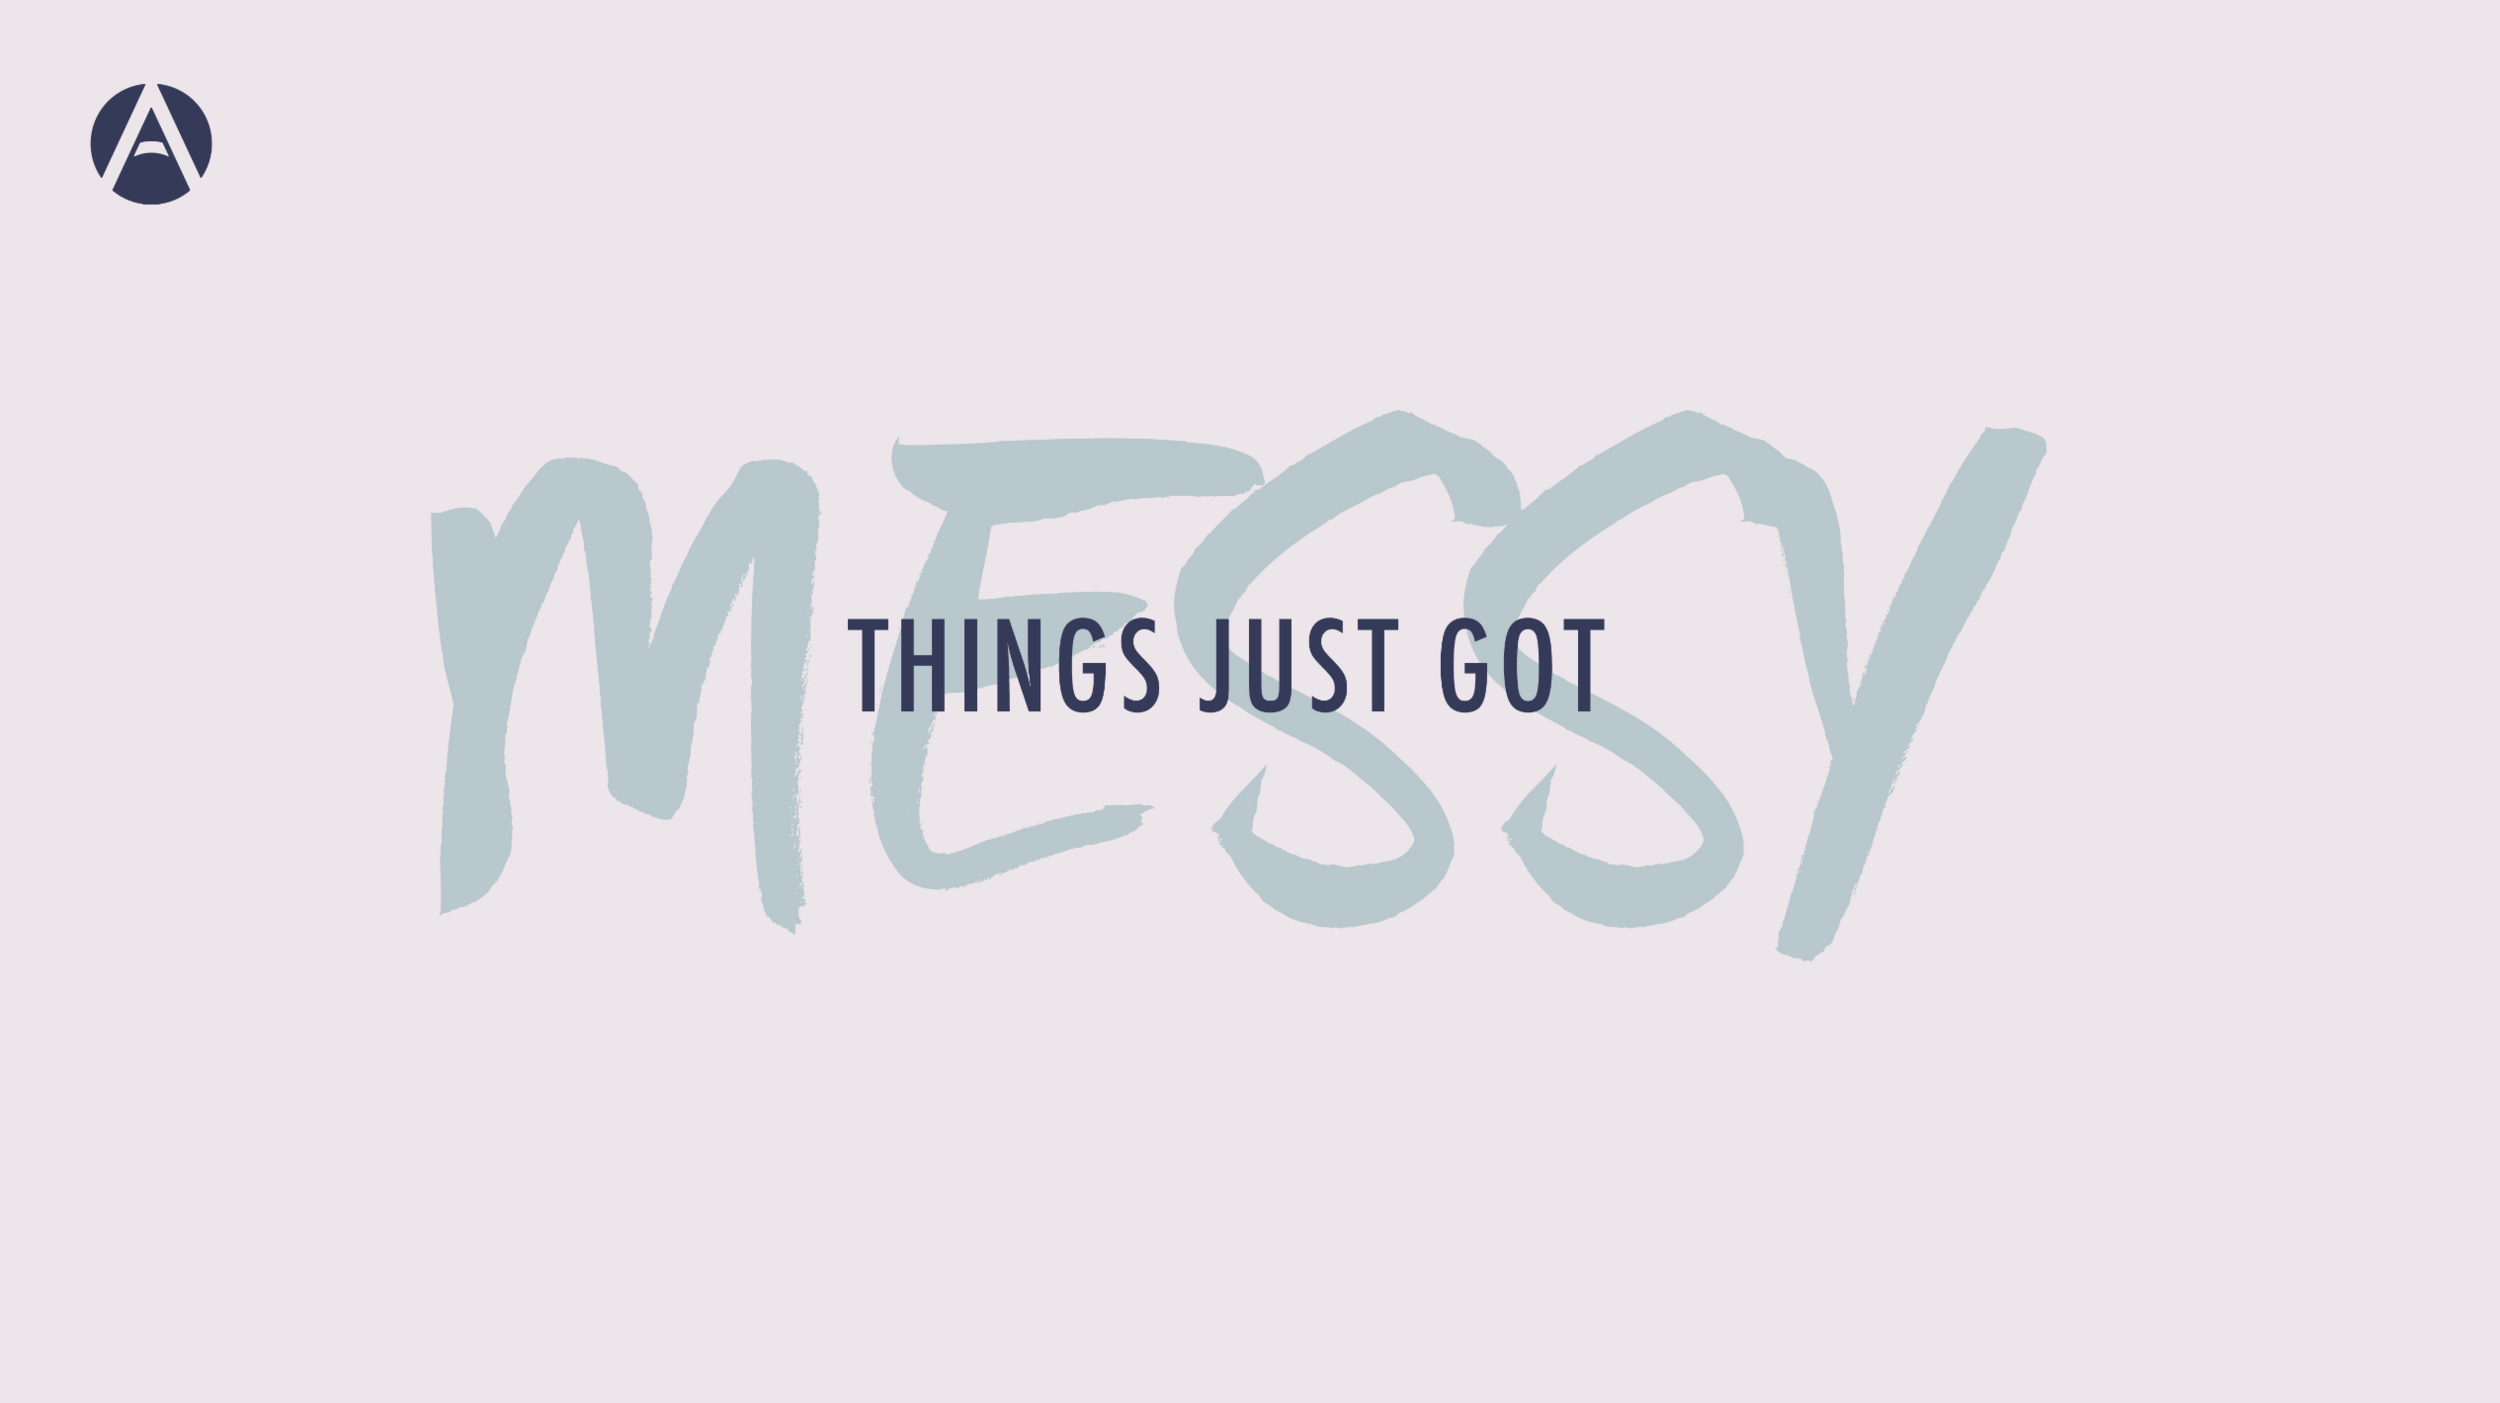 Things Just Got Messy - We're walking through the first 12 chapters of the book of Acts, observing what happened next after Jesus was resurrected. The theme: the Church is made of people, and that makes it messy.